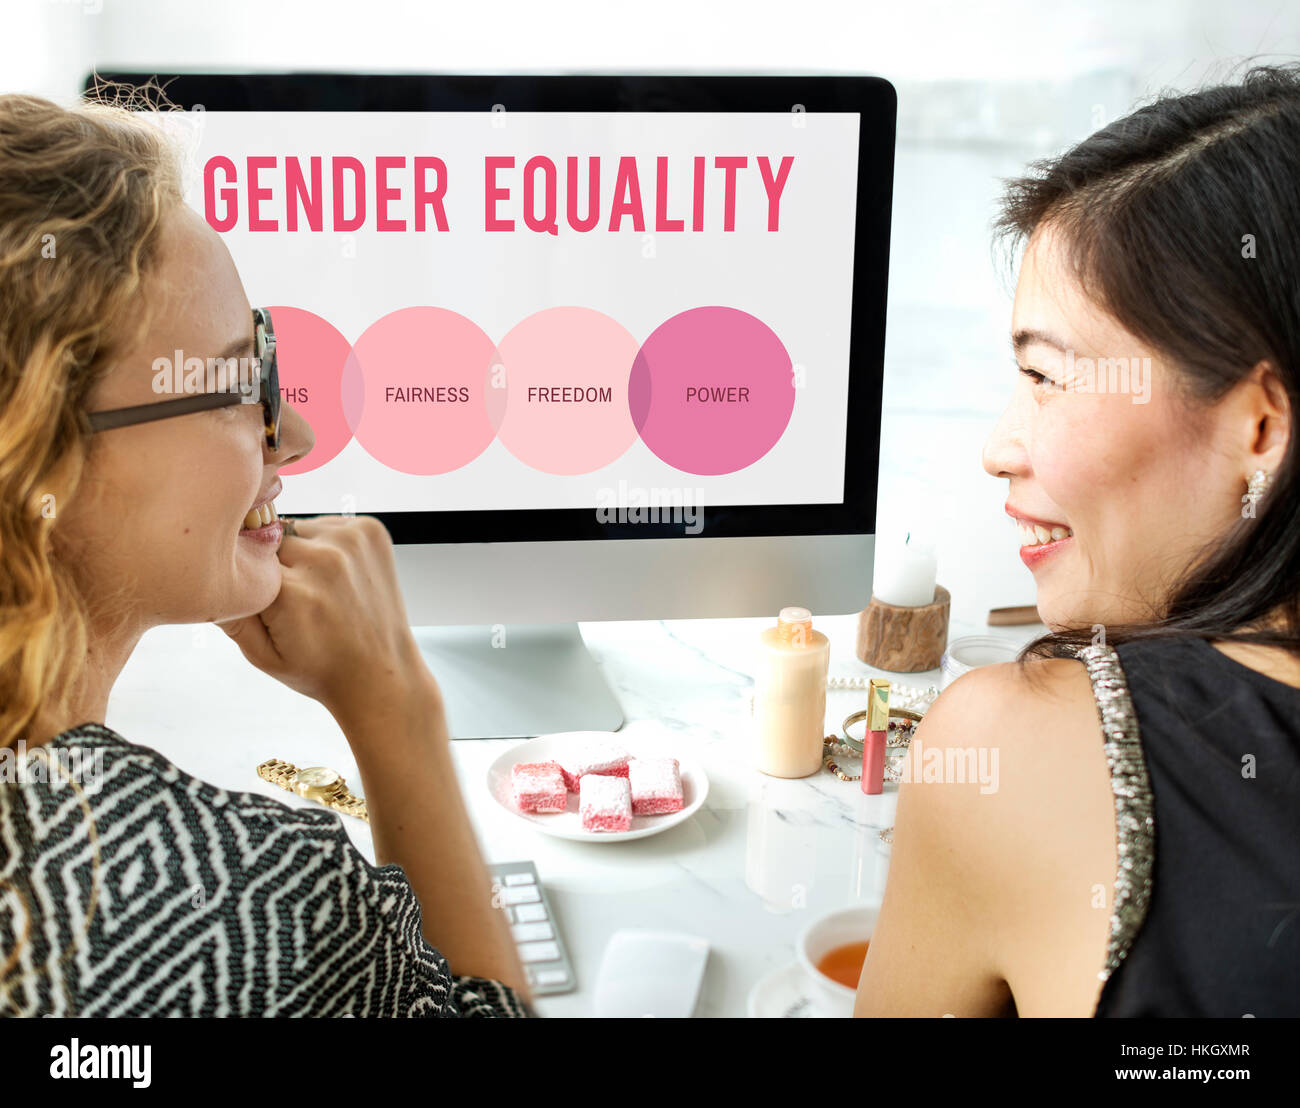 Women Rights Human Gender Equal Opportunity Concept - Stock Image